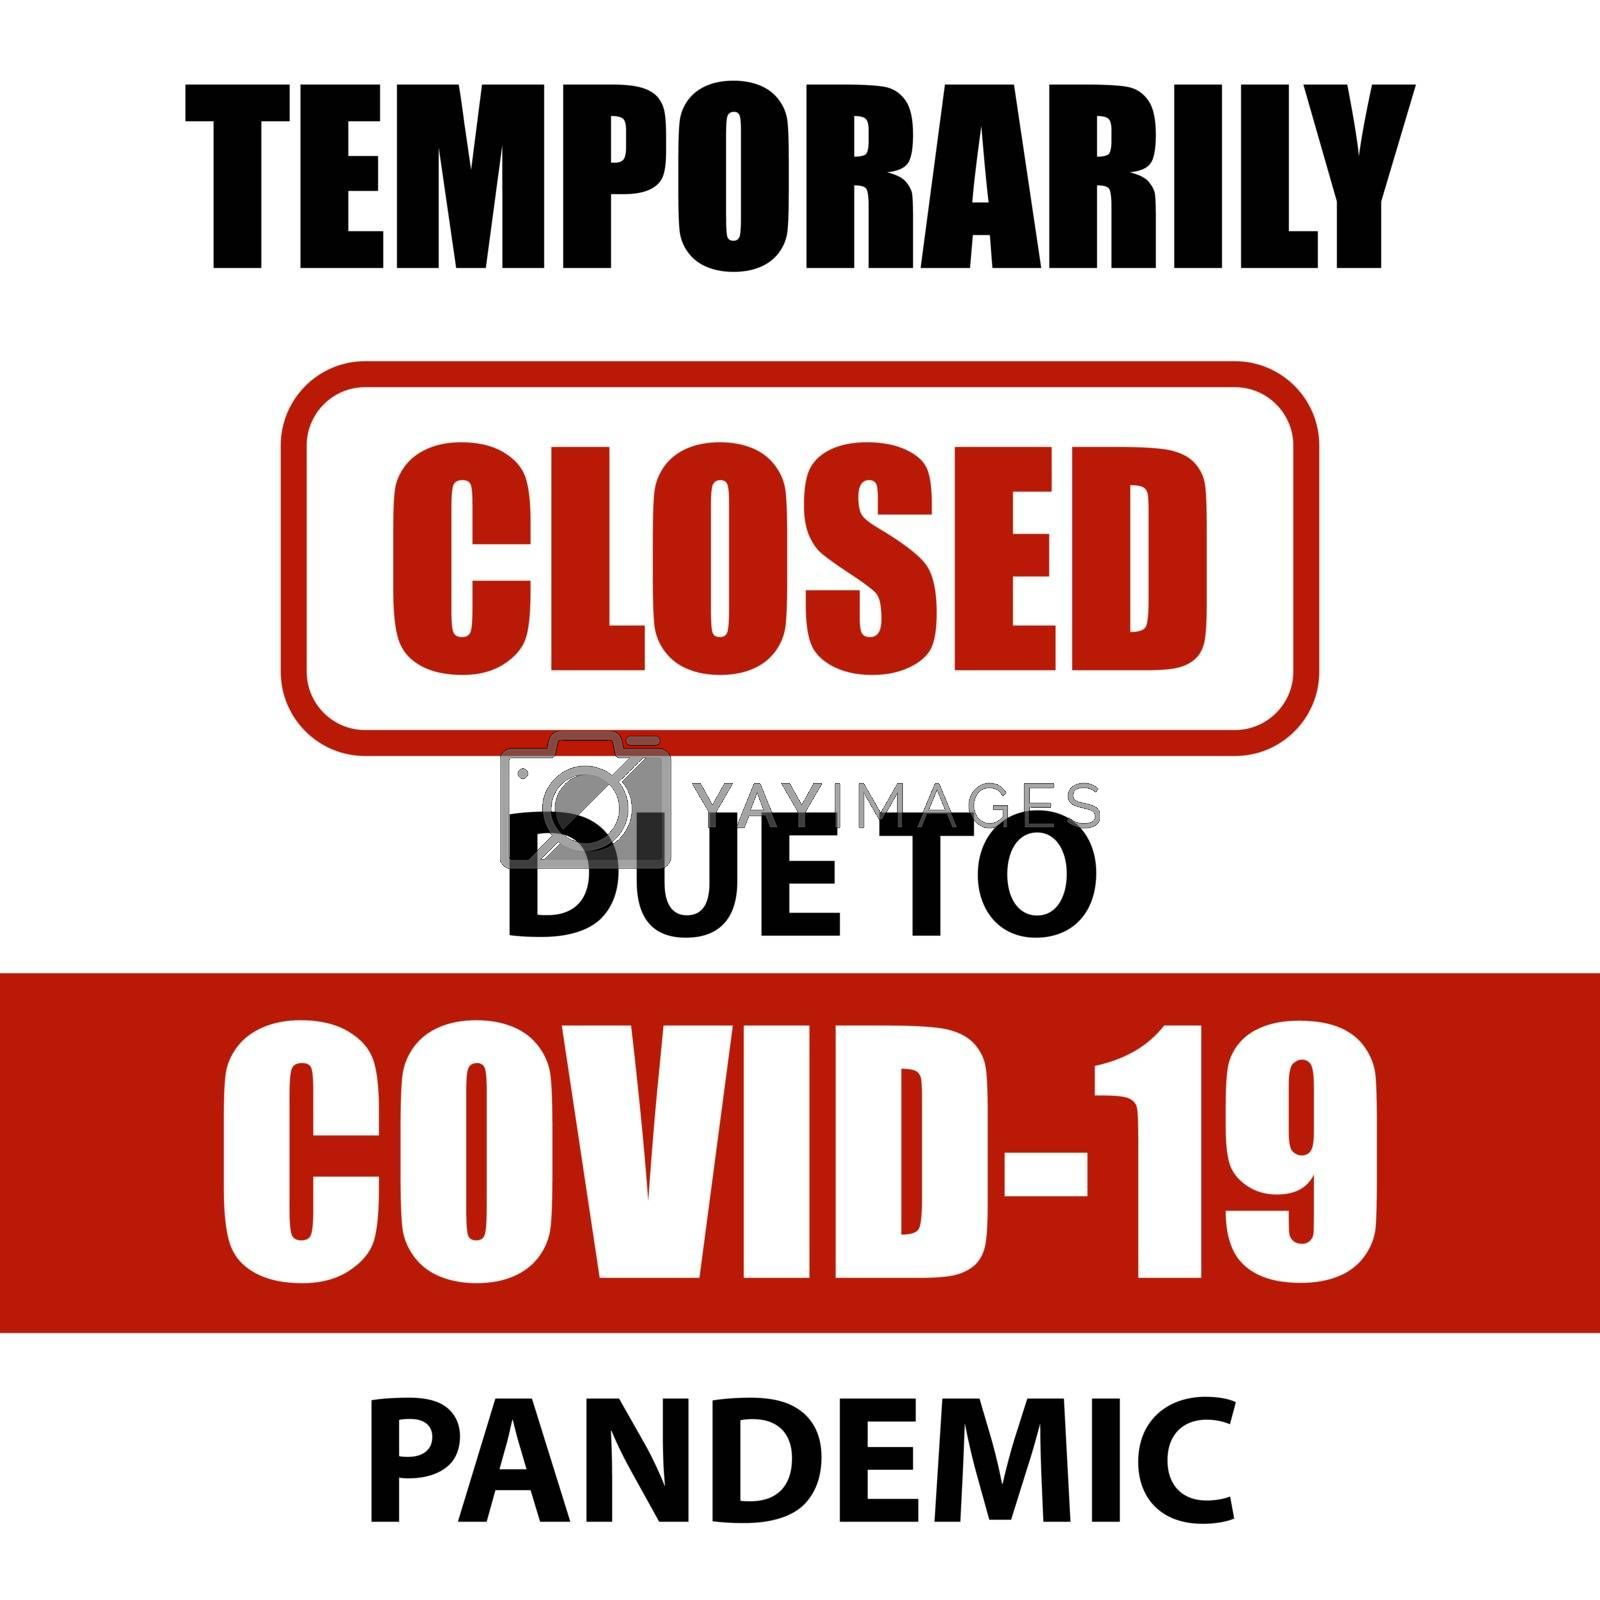 Office temporarily closed sign of coronavirus . Information warning sign about quarantine measures in public places. Restriction and caution COVID-19. Vector used for web, print, banner, flyer